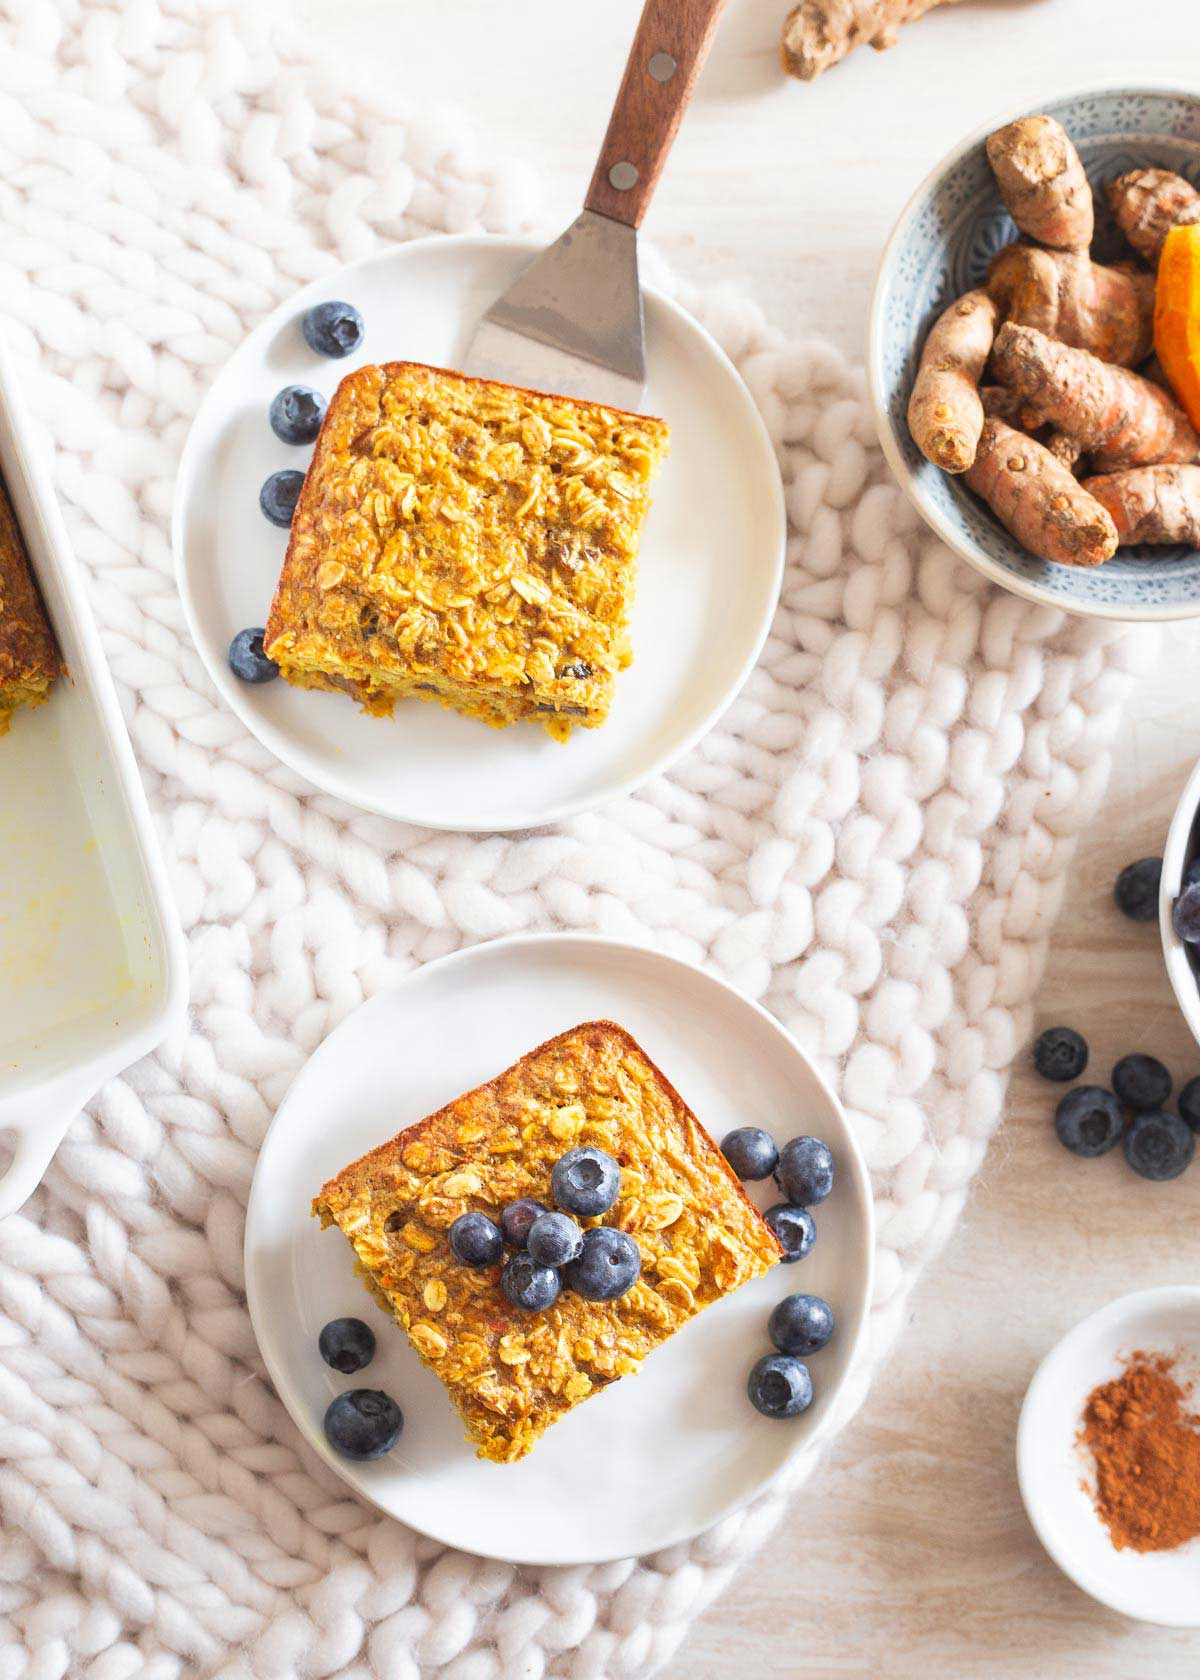 This anti-inflammatory turmeric baked oatmeal is a nutritious way to start the day!